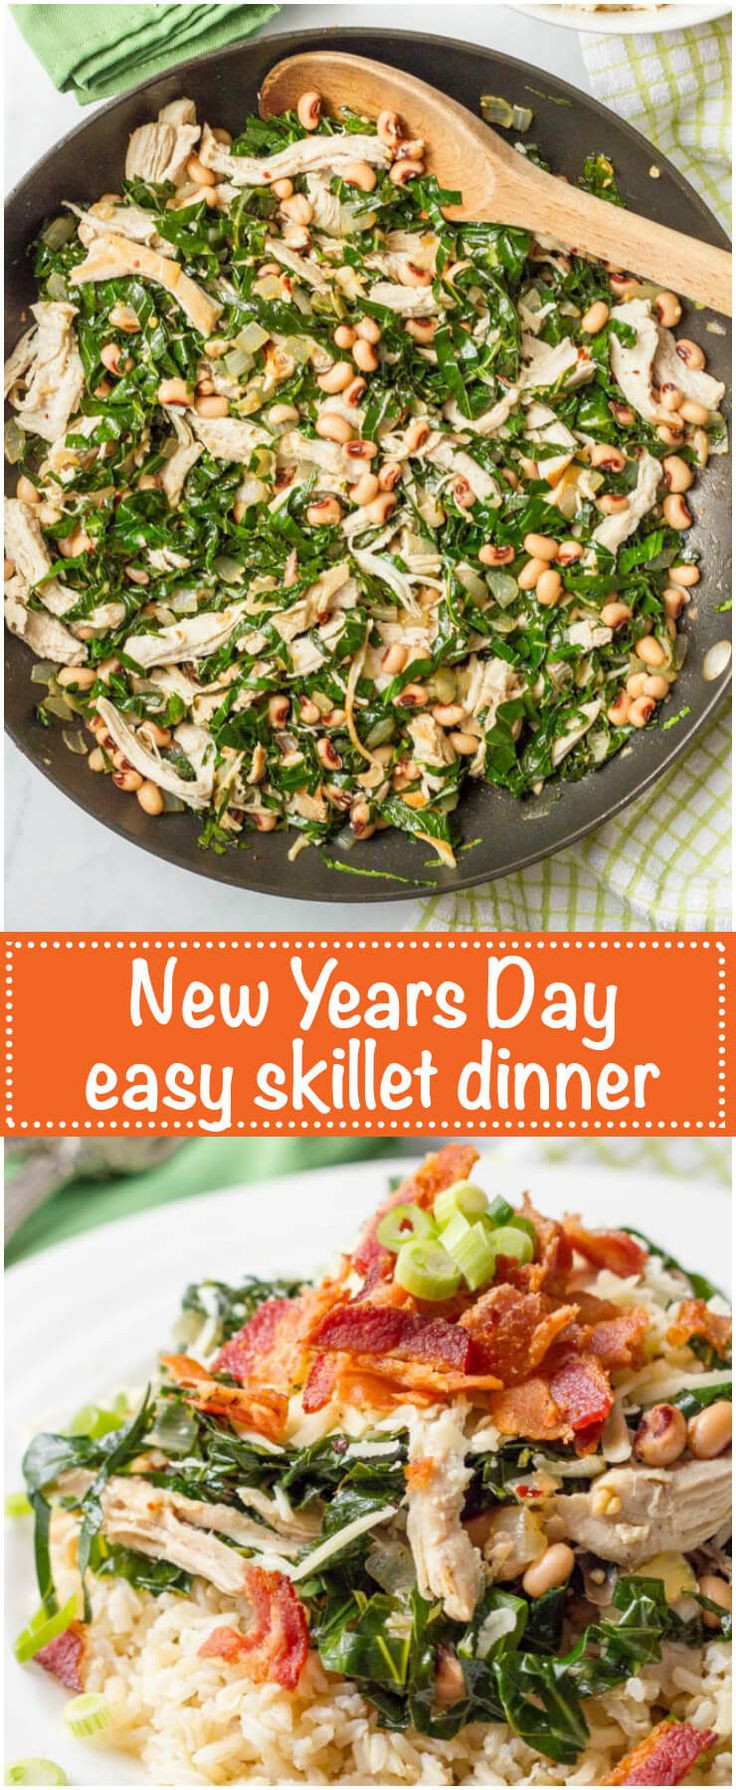 New Years Day Dinner Ideas  Southern New Year s Day dinner skillet